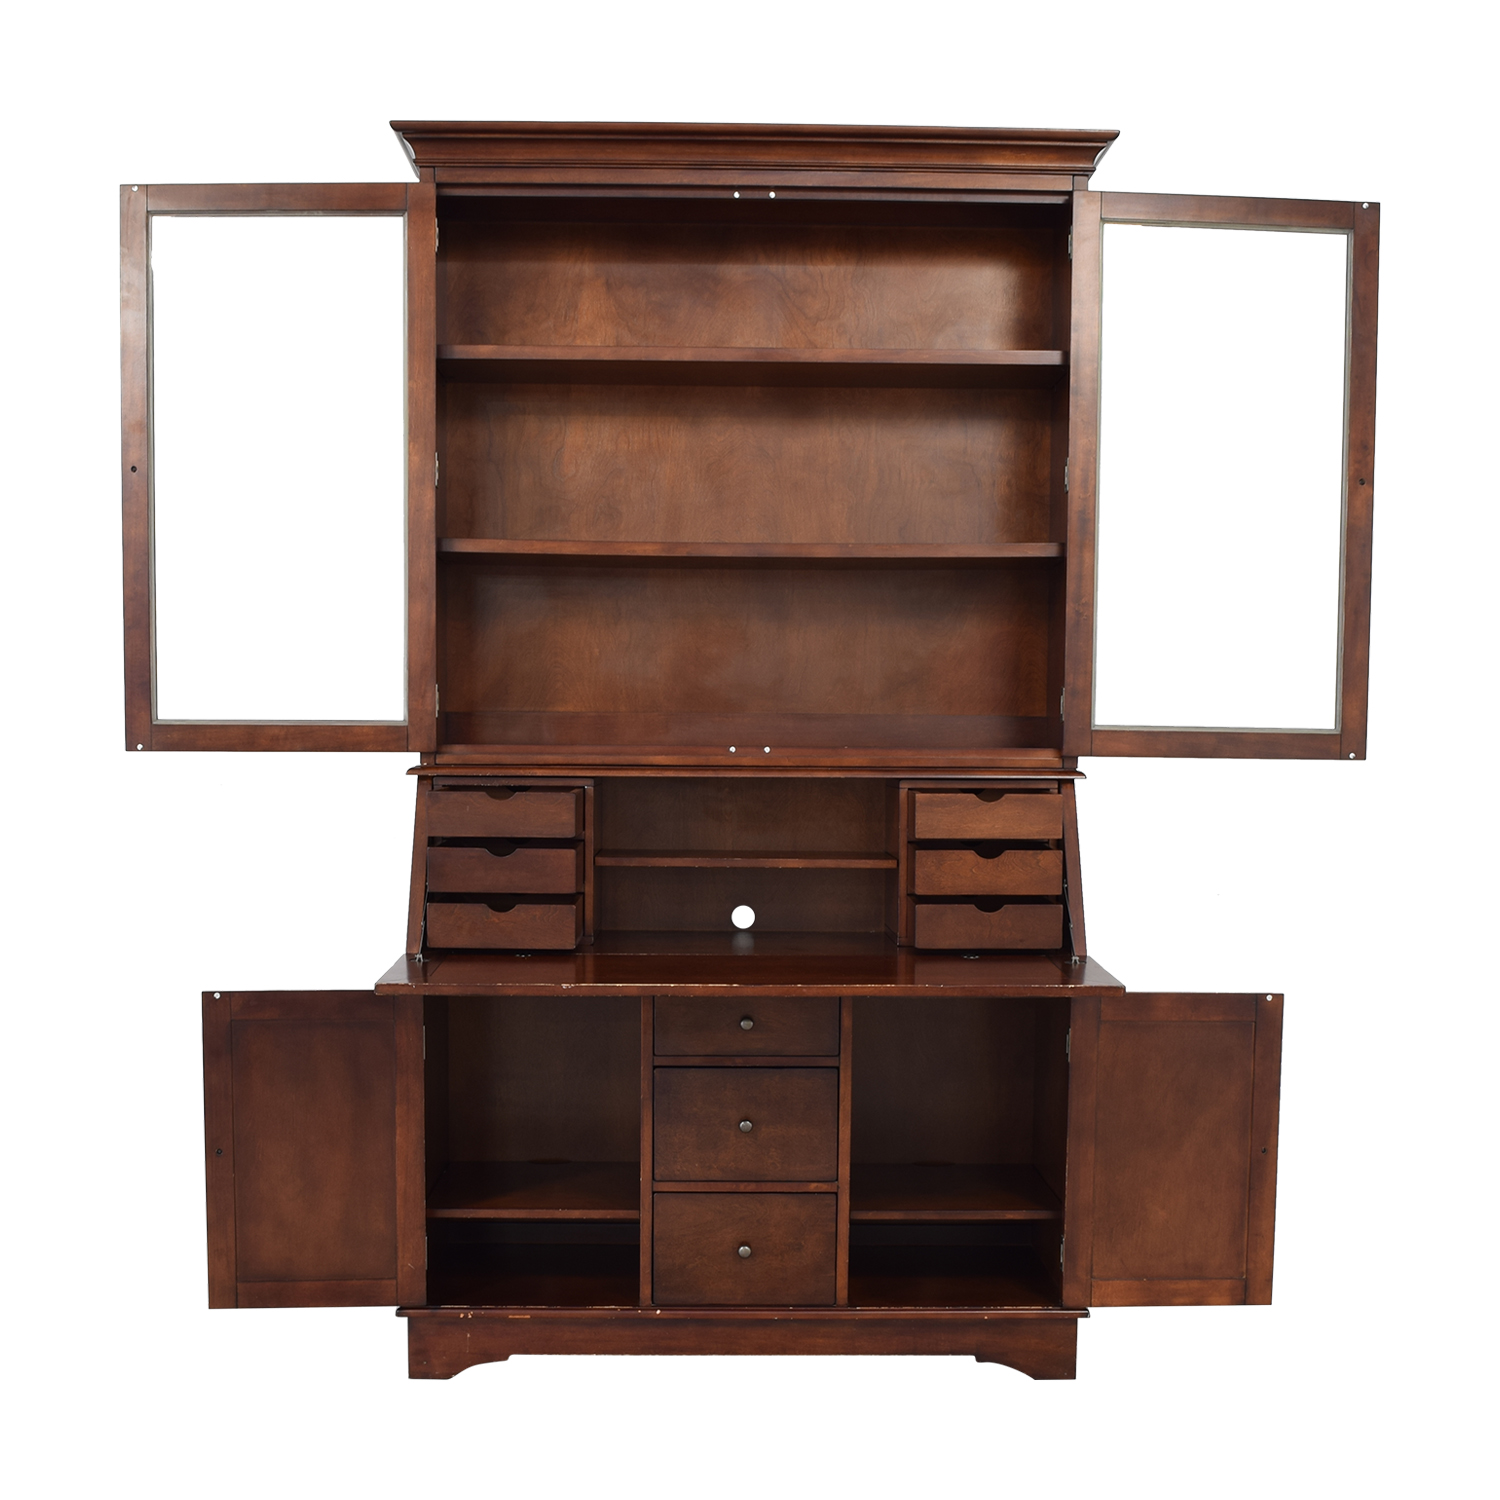 Pottery Barn Graham Desk and Hutch / Storage